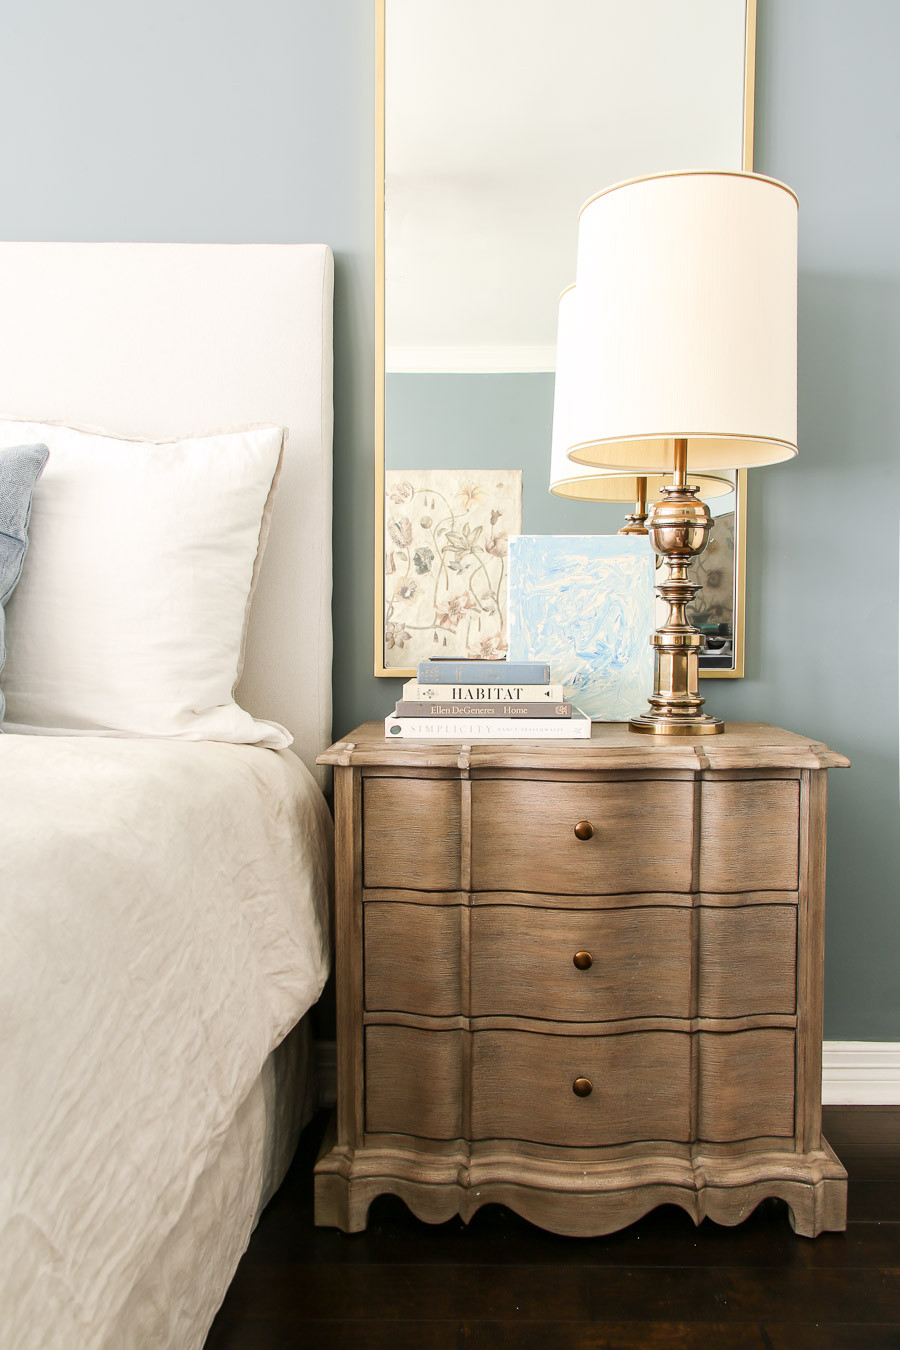 styled nightstand with brass lamp grandmillenial